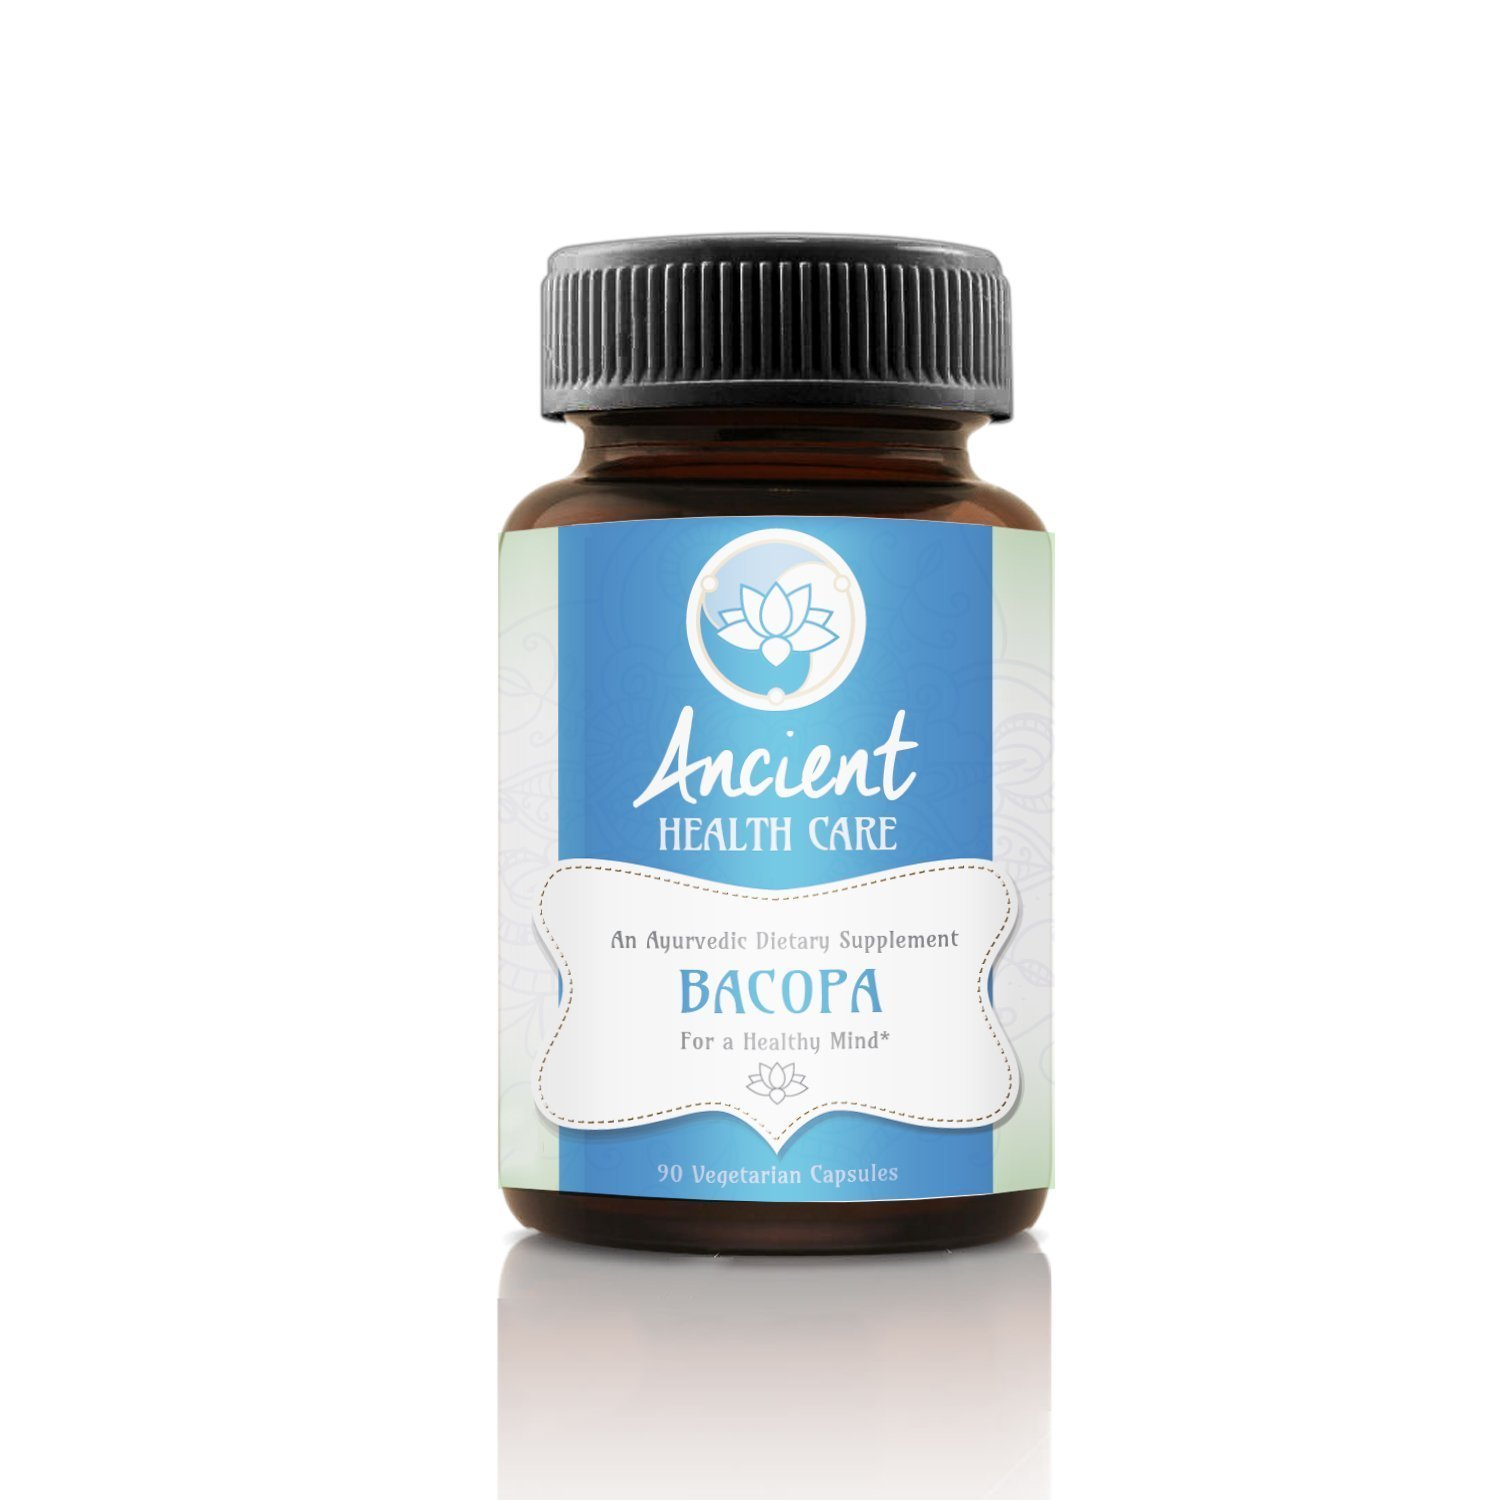 Ancient Health Care Premium Bacopa (Brahmi) Natural Mental Performance Nootropic - Supports Memory, Focus, Clarity and Lowers Stress - 100 mg - 90 Veggie Capsules - 20% Bascosides - Made in USA